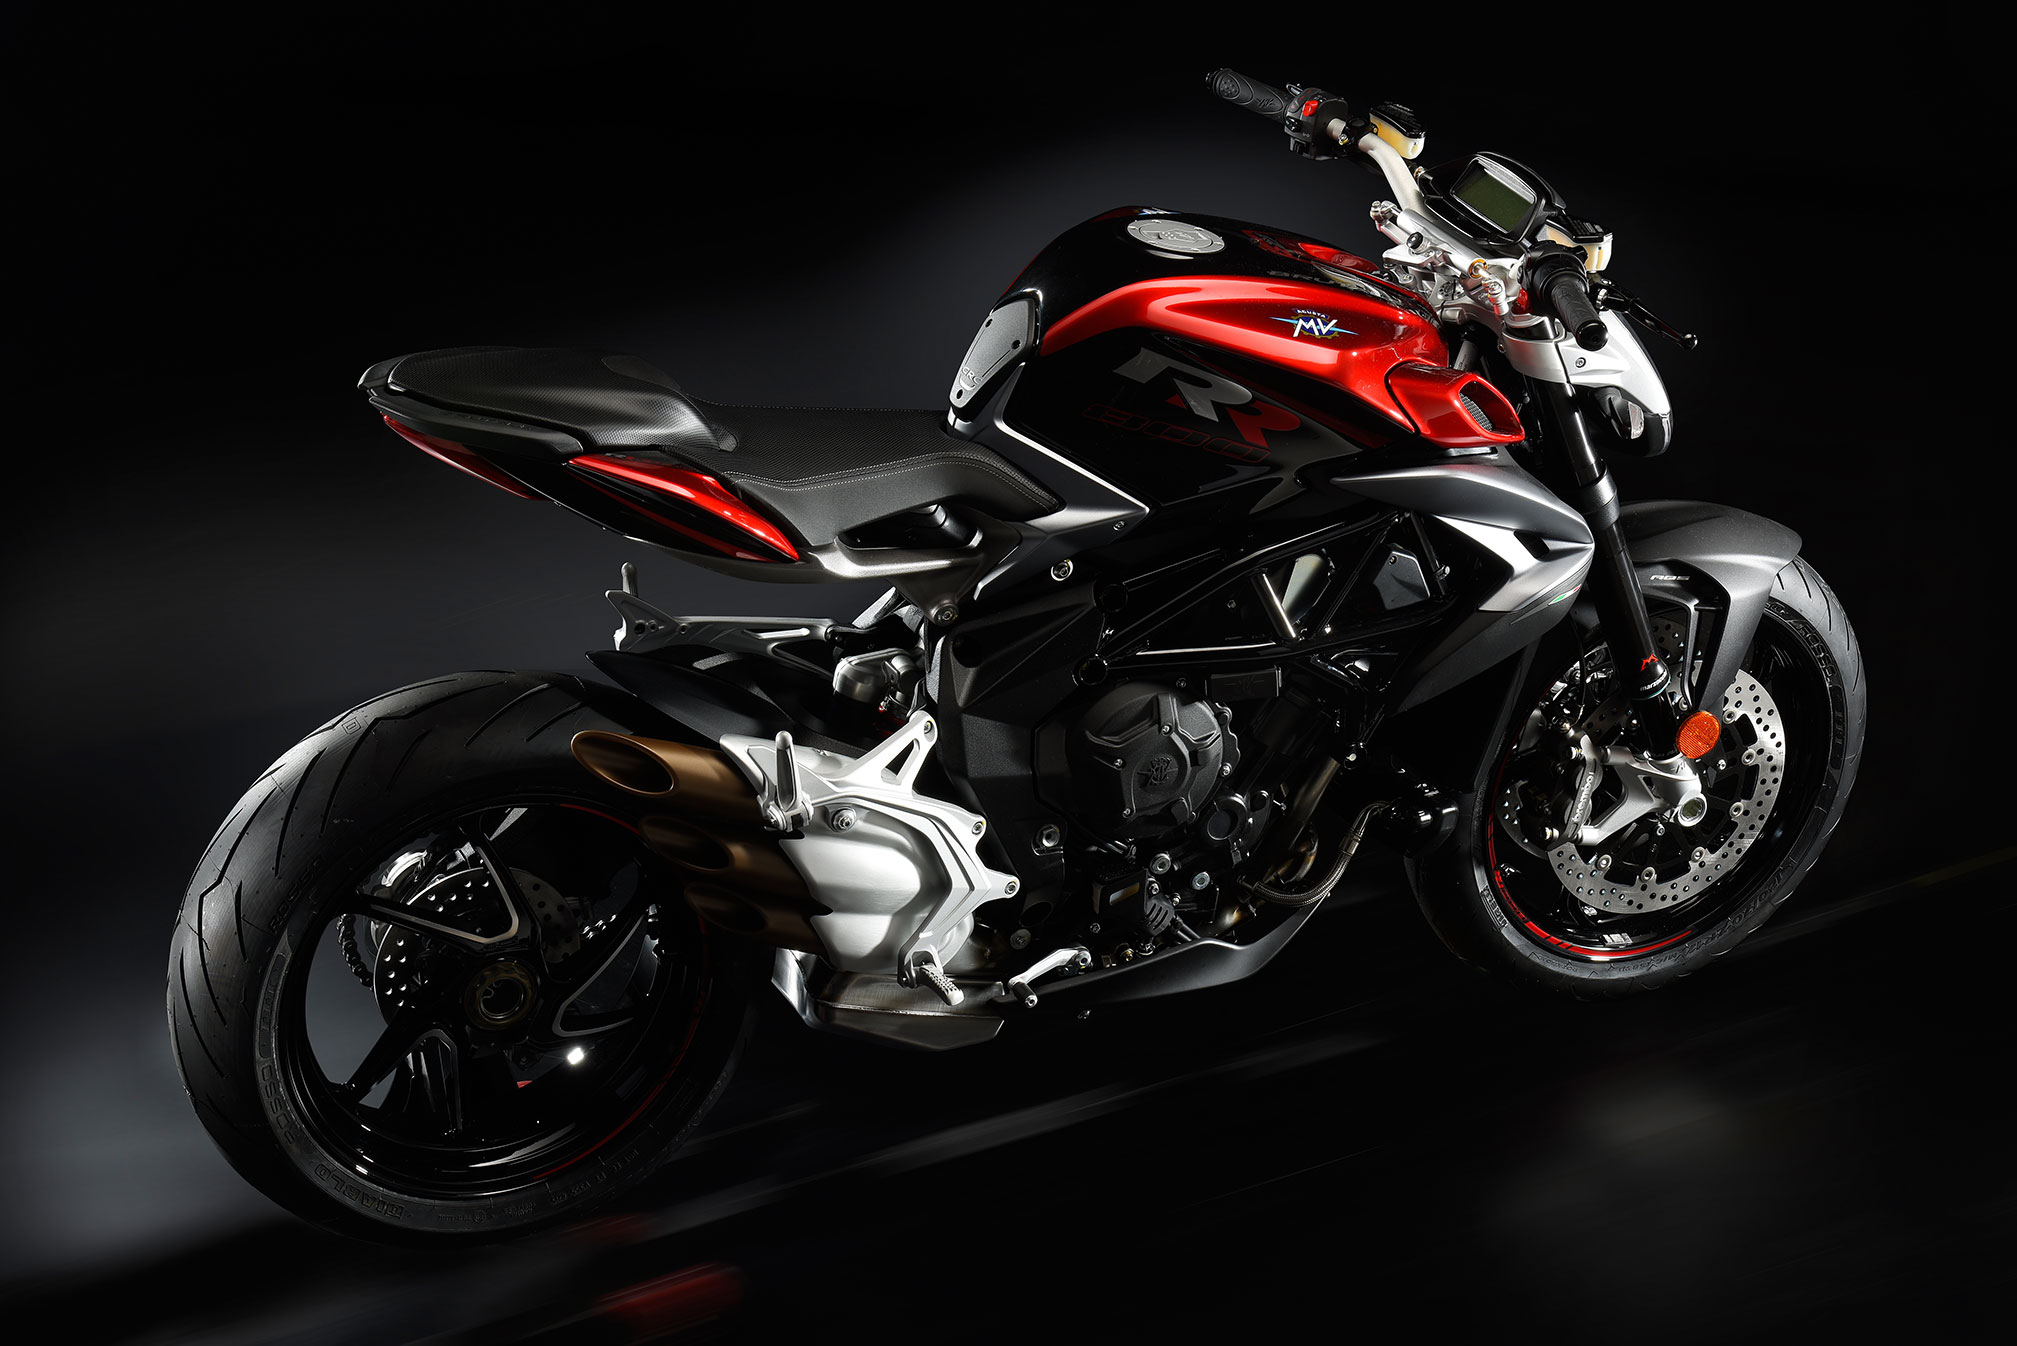 2017 MV Agusta Brutale 800 RR Naked Sports - Review